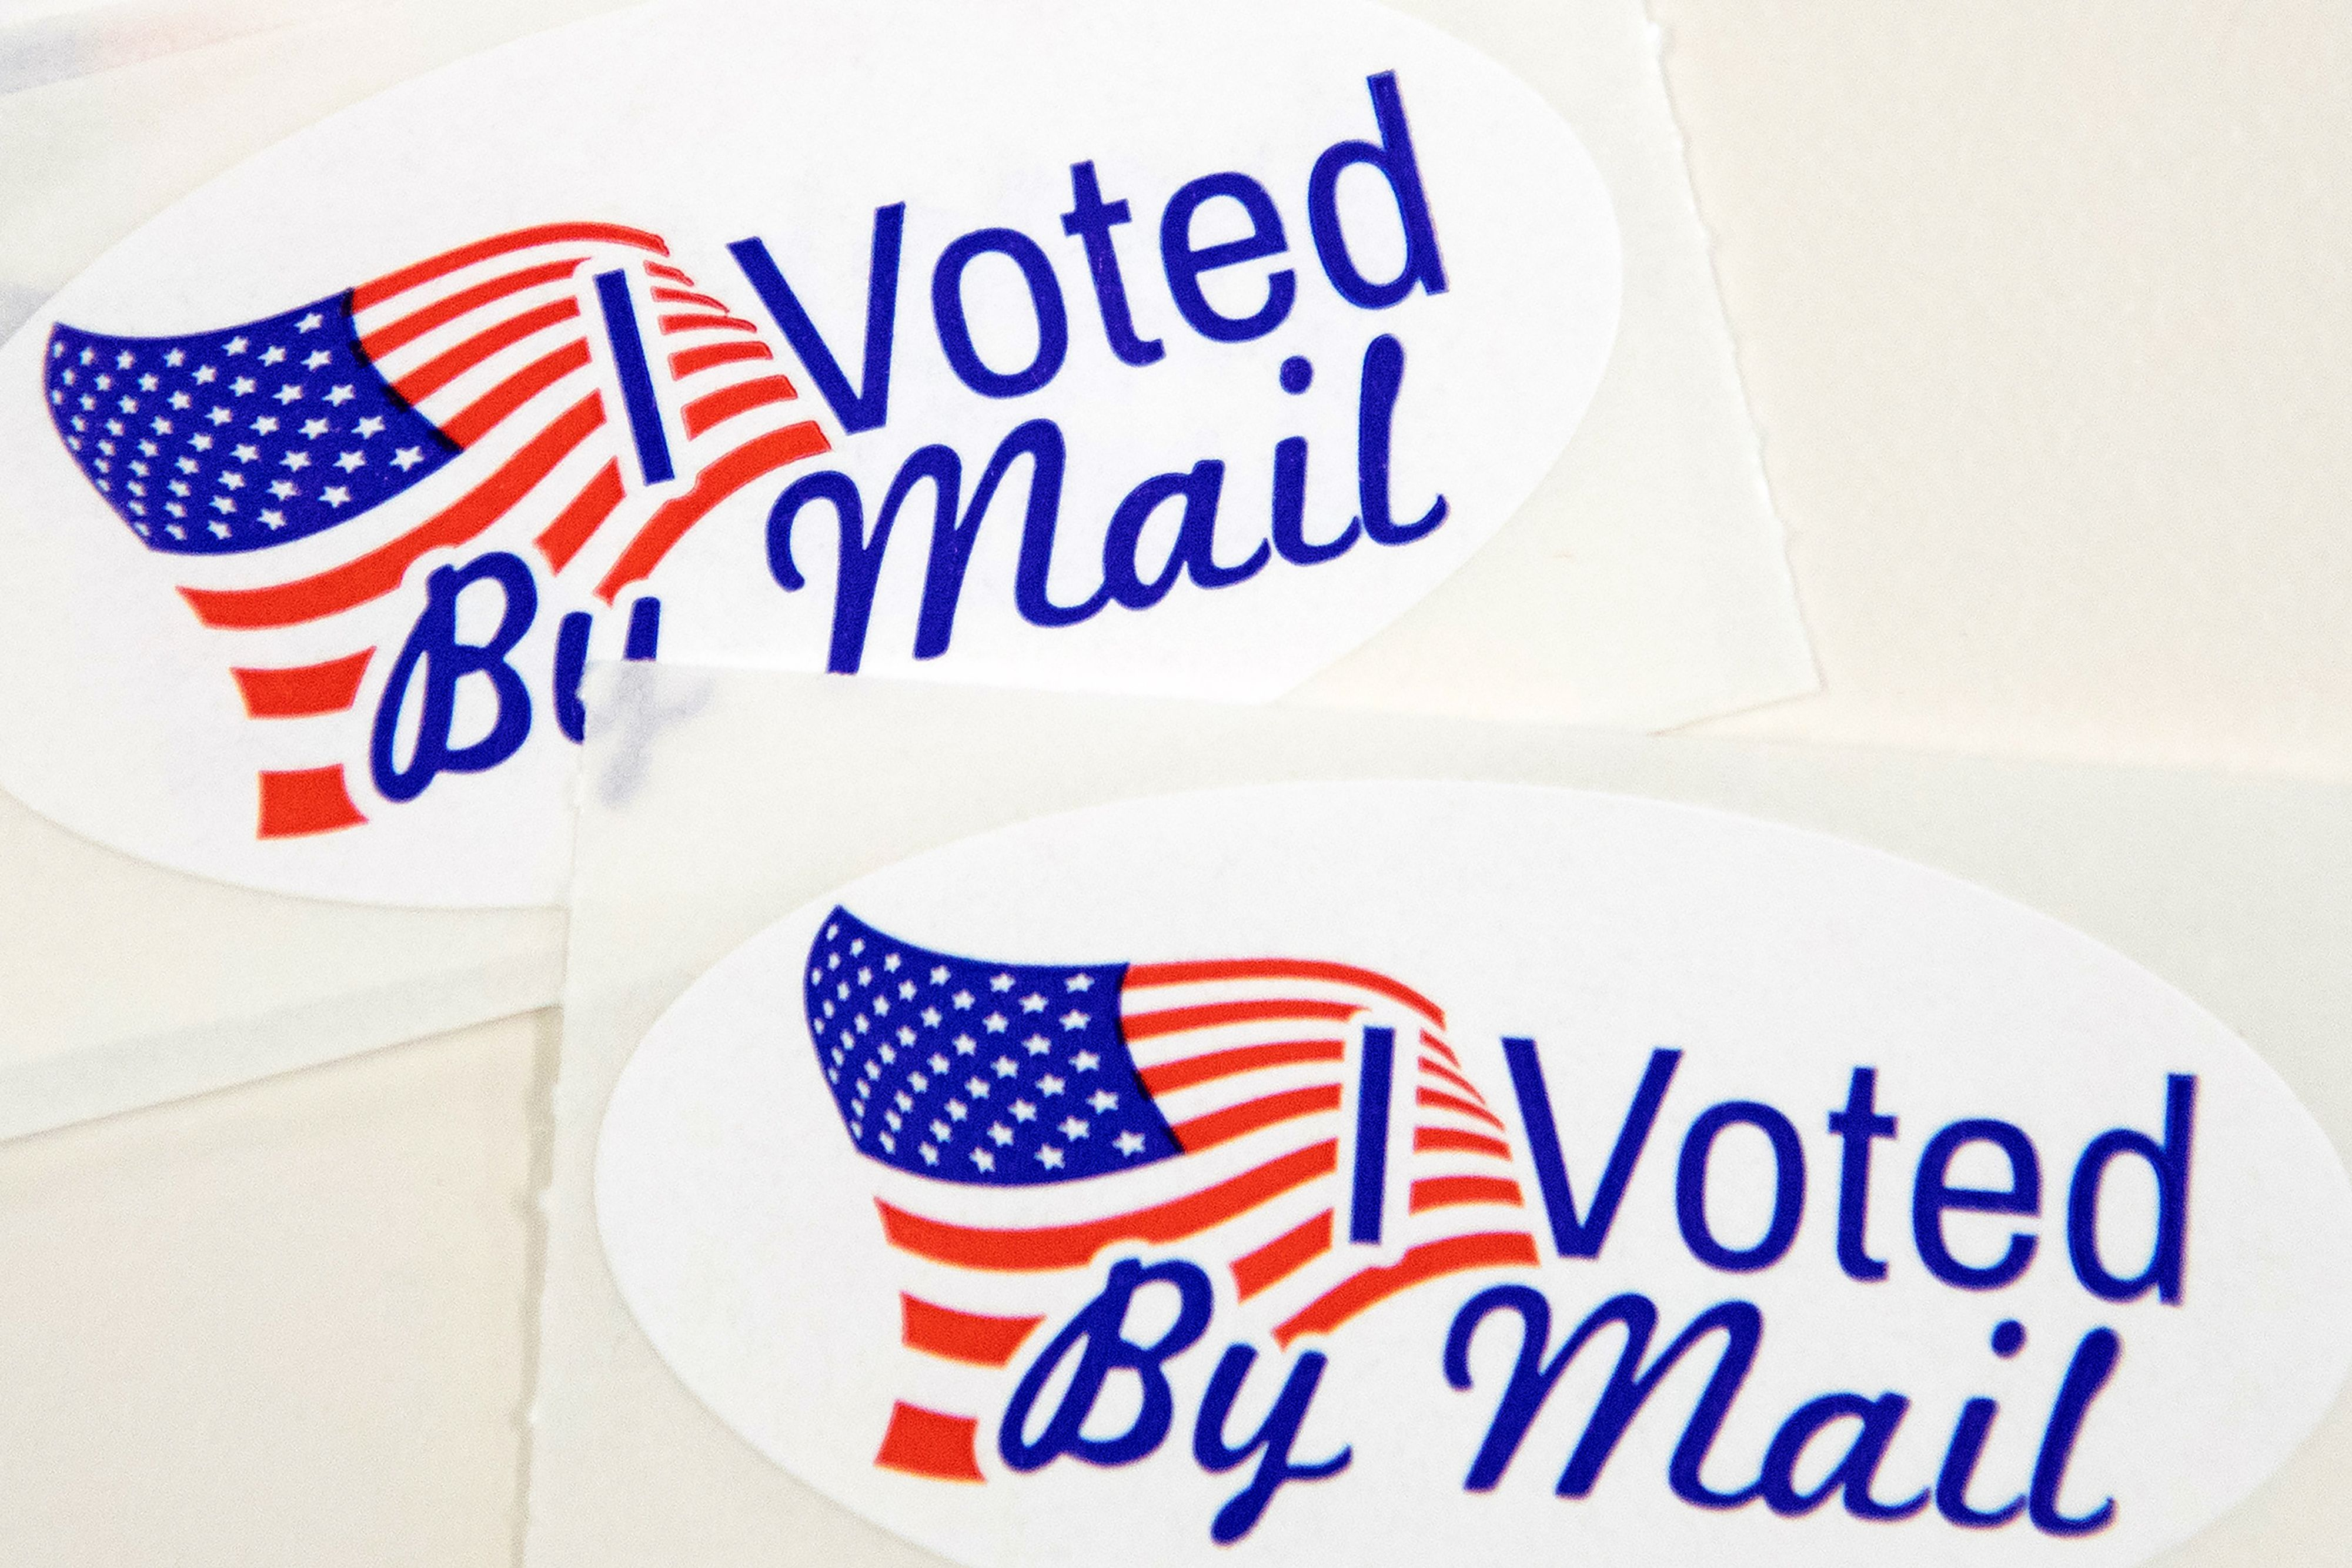 It's now too late to mail your 2020 ballot. Here's what to do instead